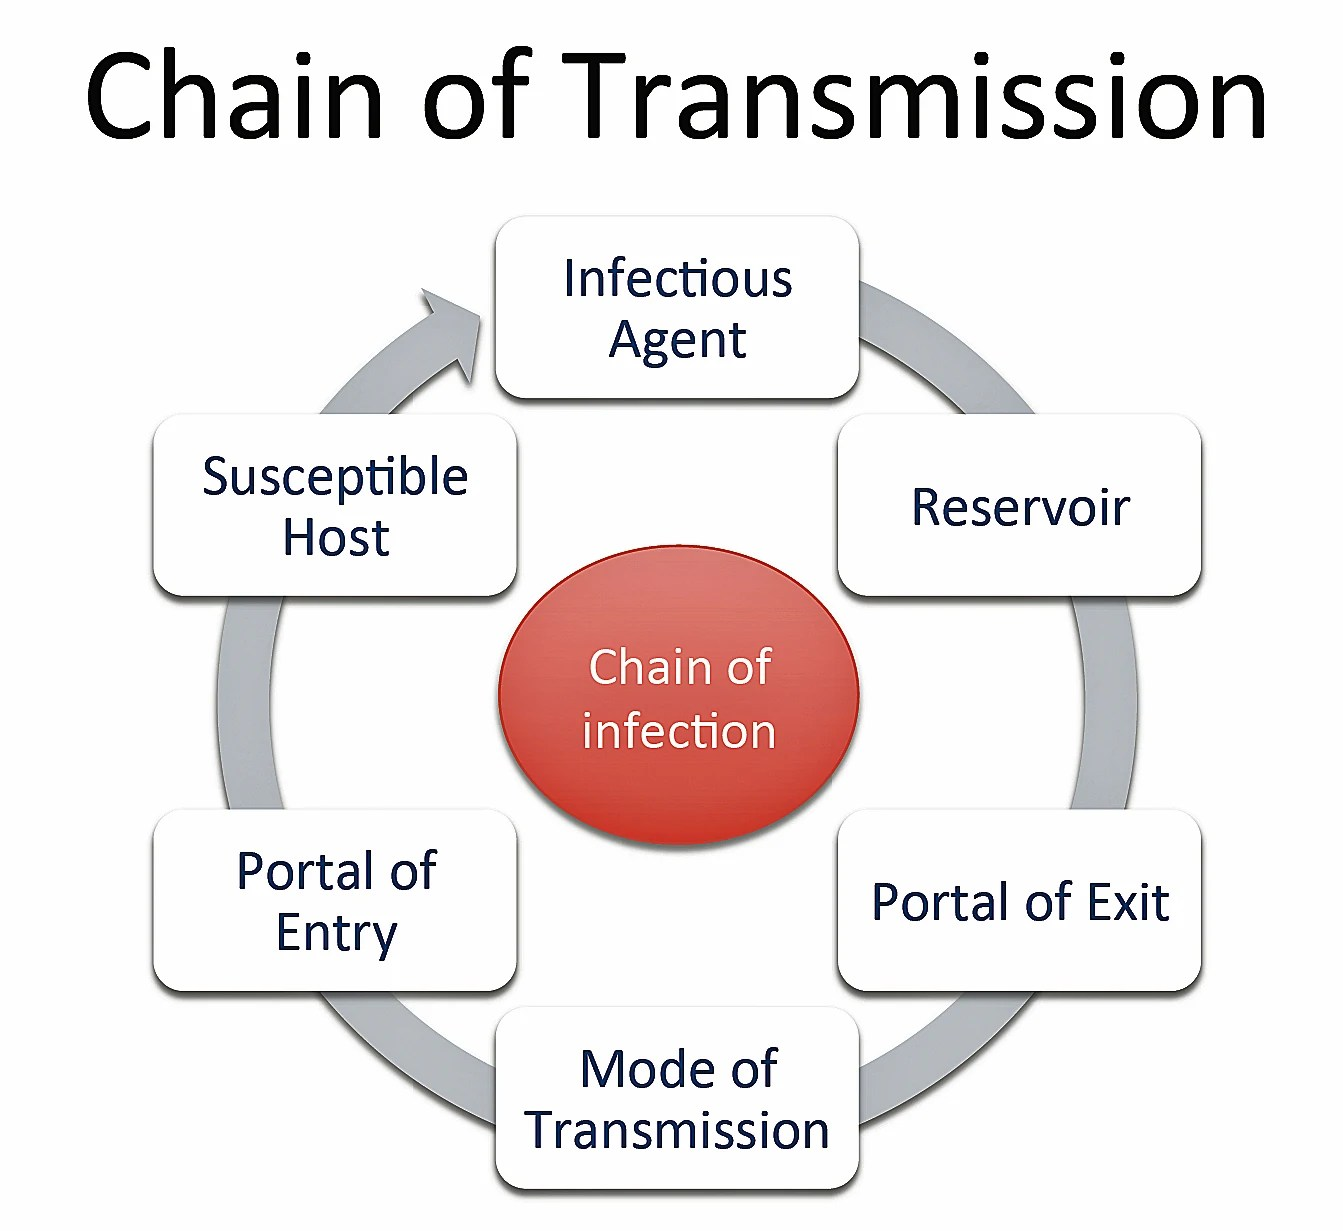 hight resolution of chain of transmission disease detectives wiki fandom powered by wikia